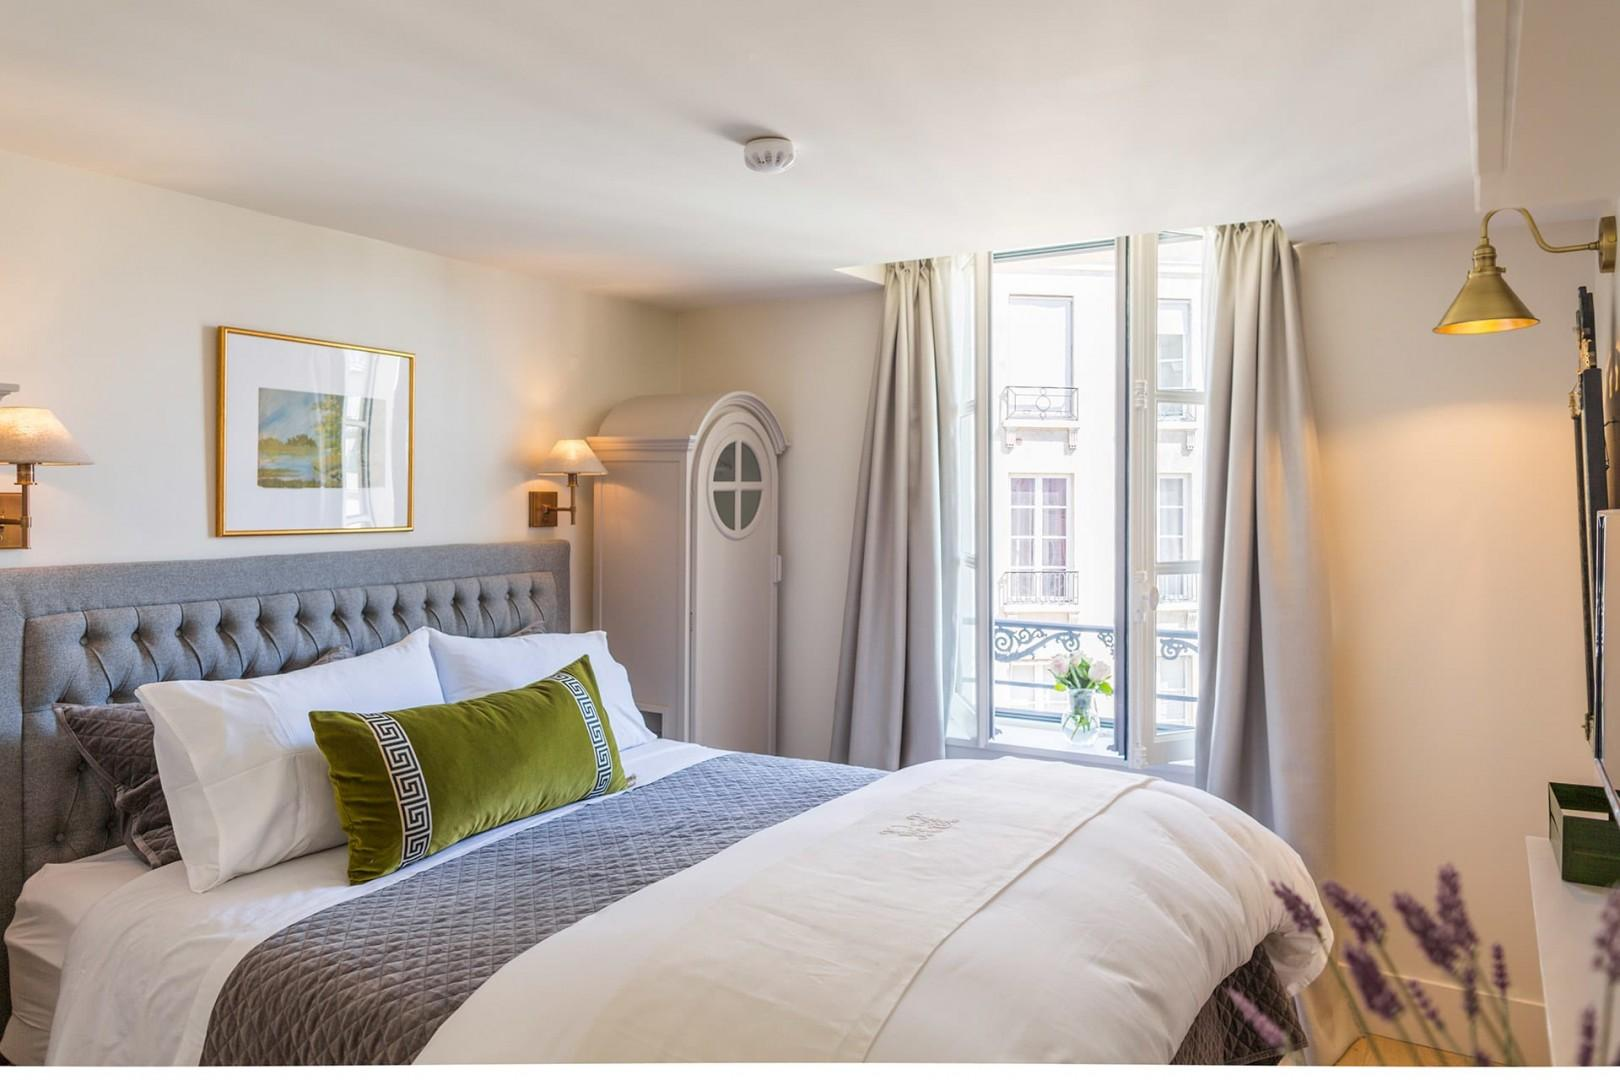 The bedroom comes with a comfortable bed and en suite bathroom.